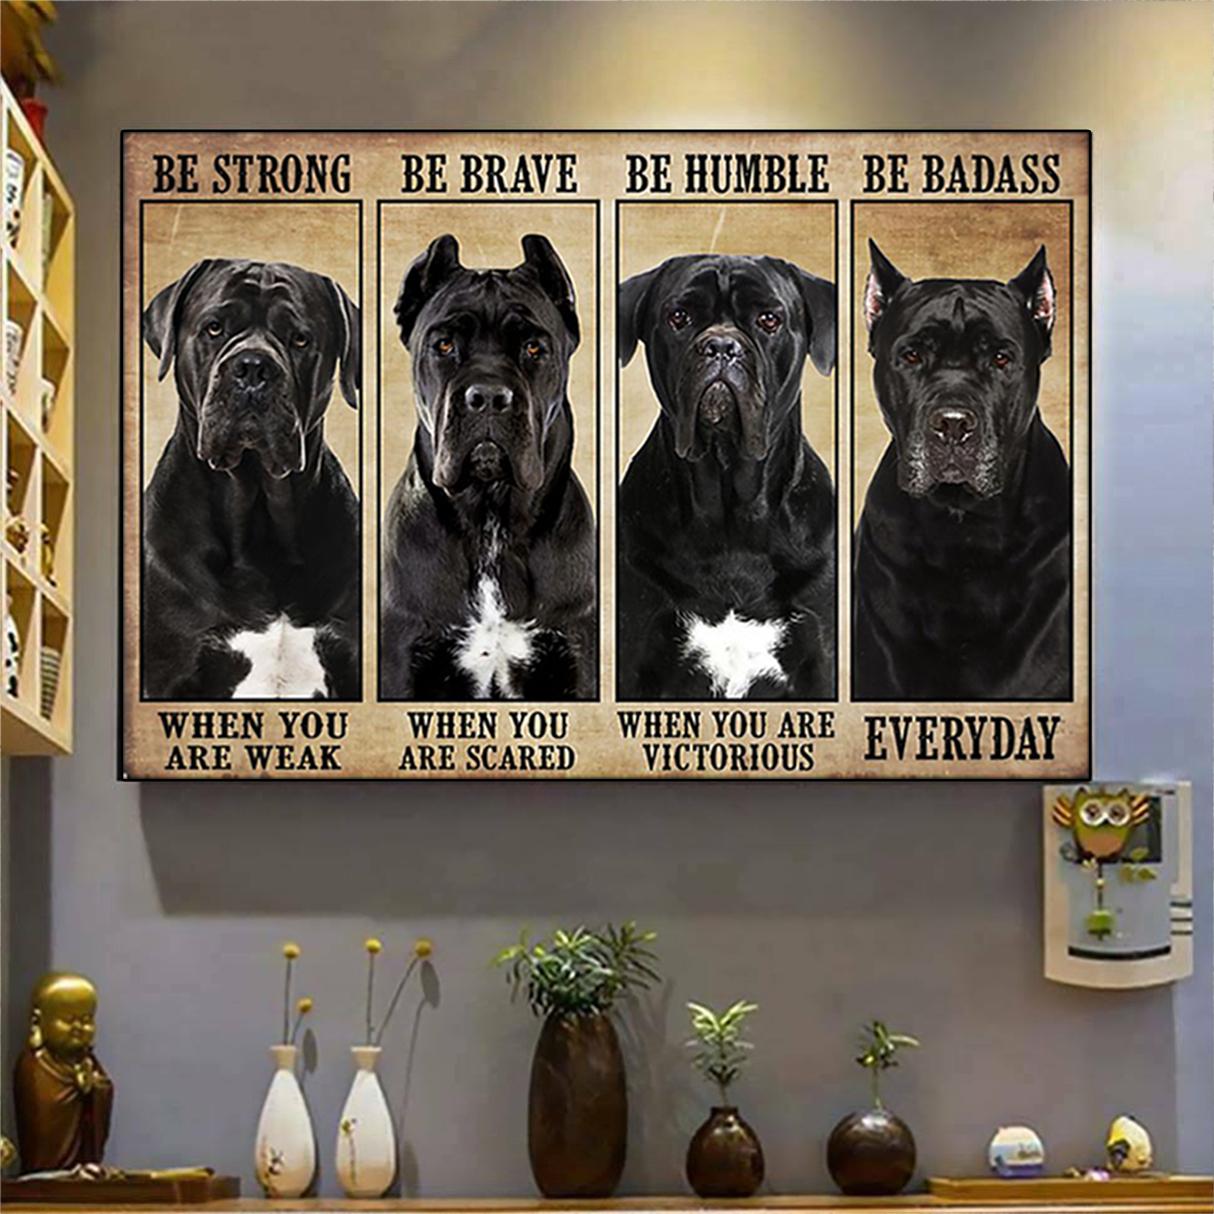 Cane corso be strong be brave be humble be badass poster A3